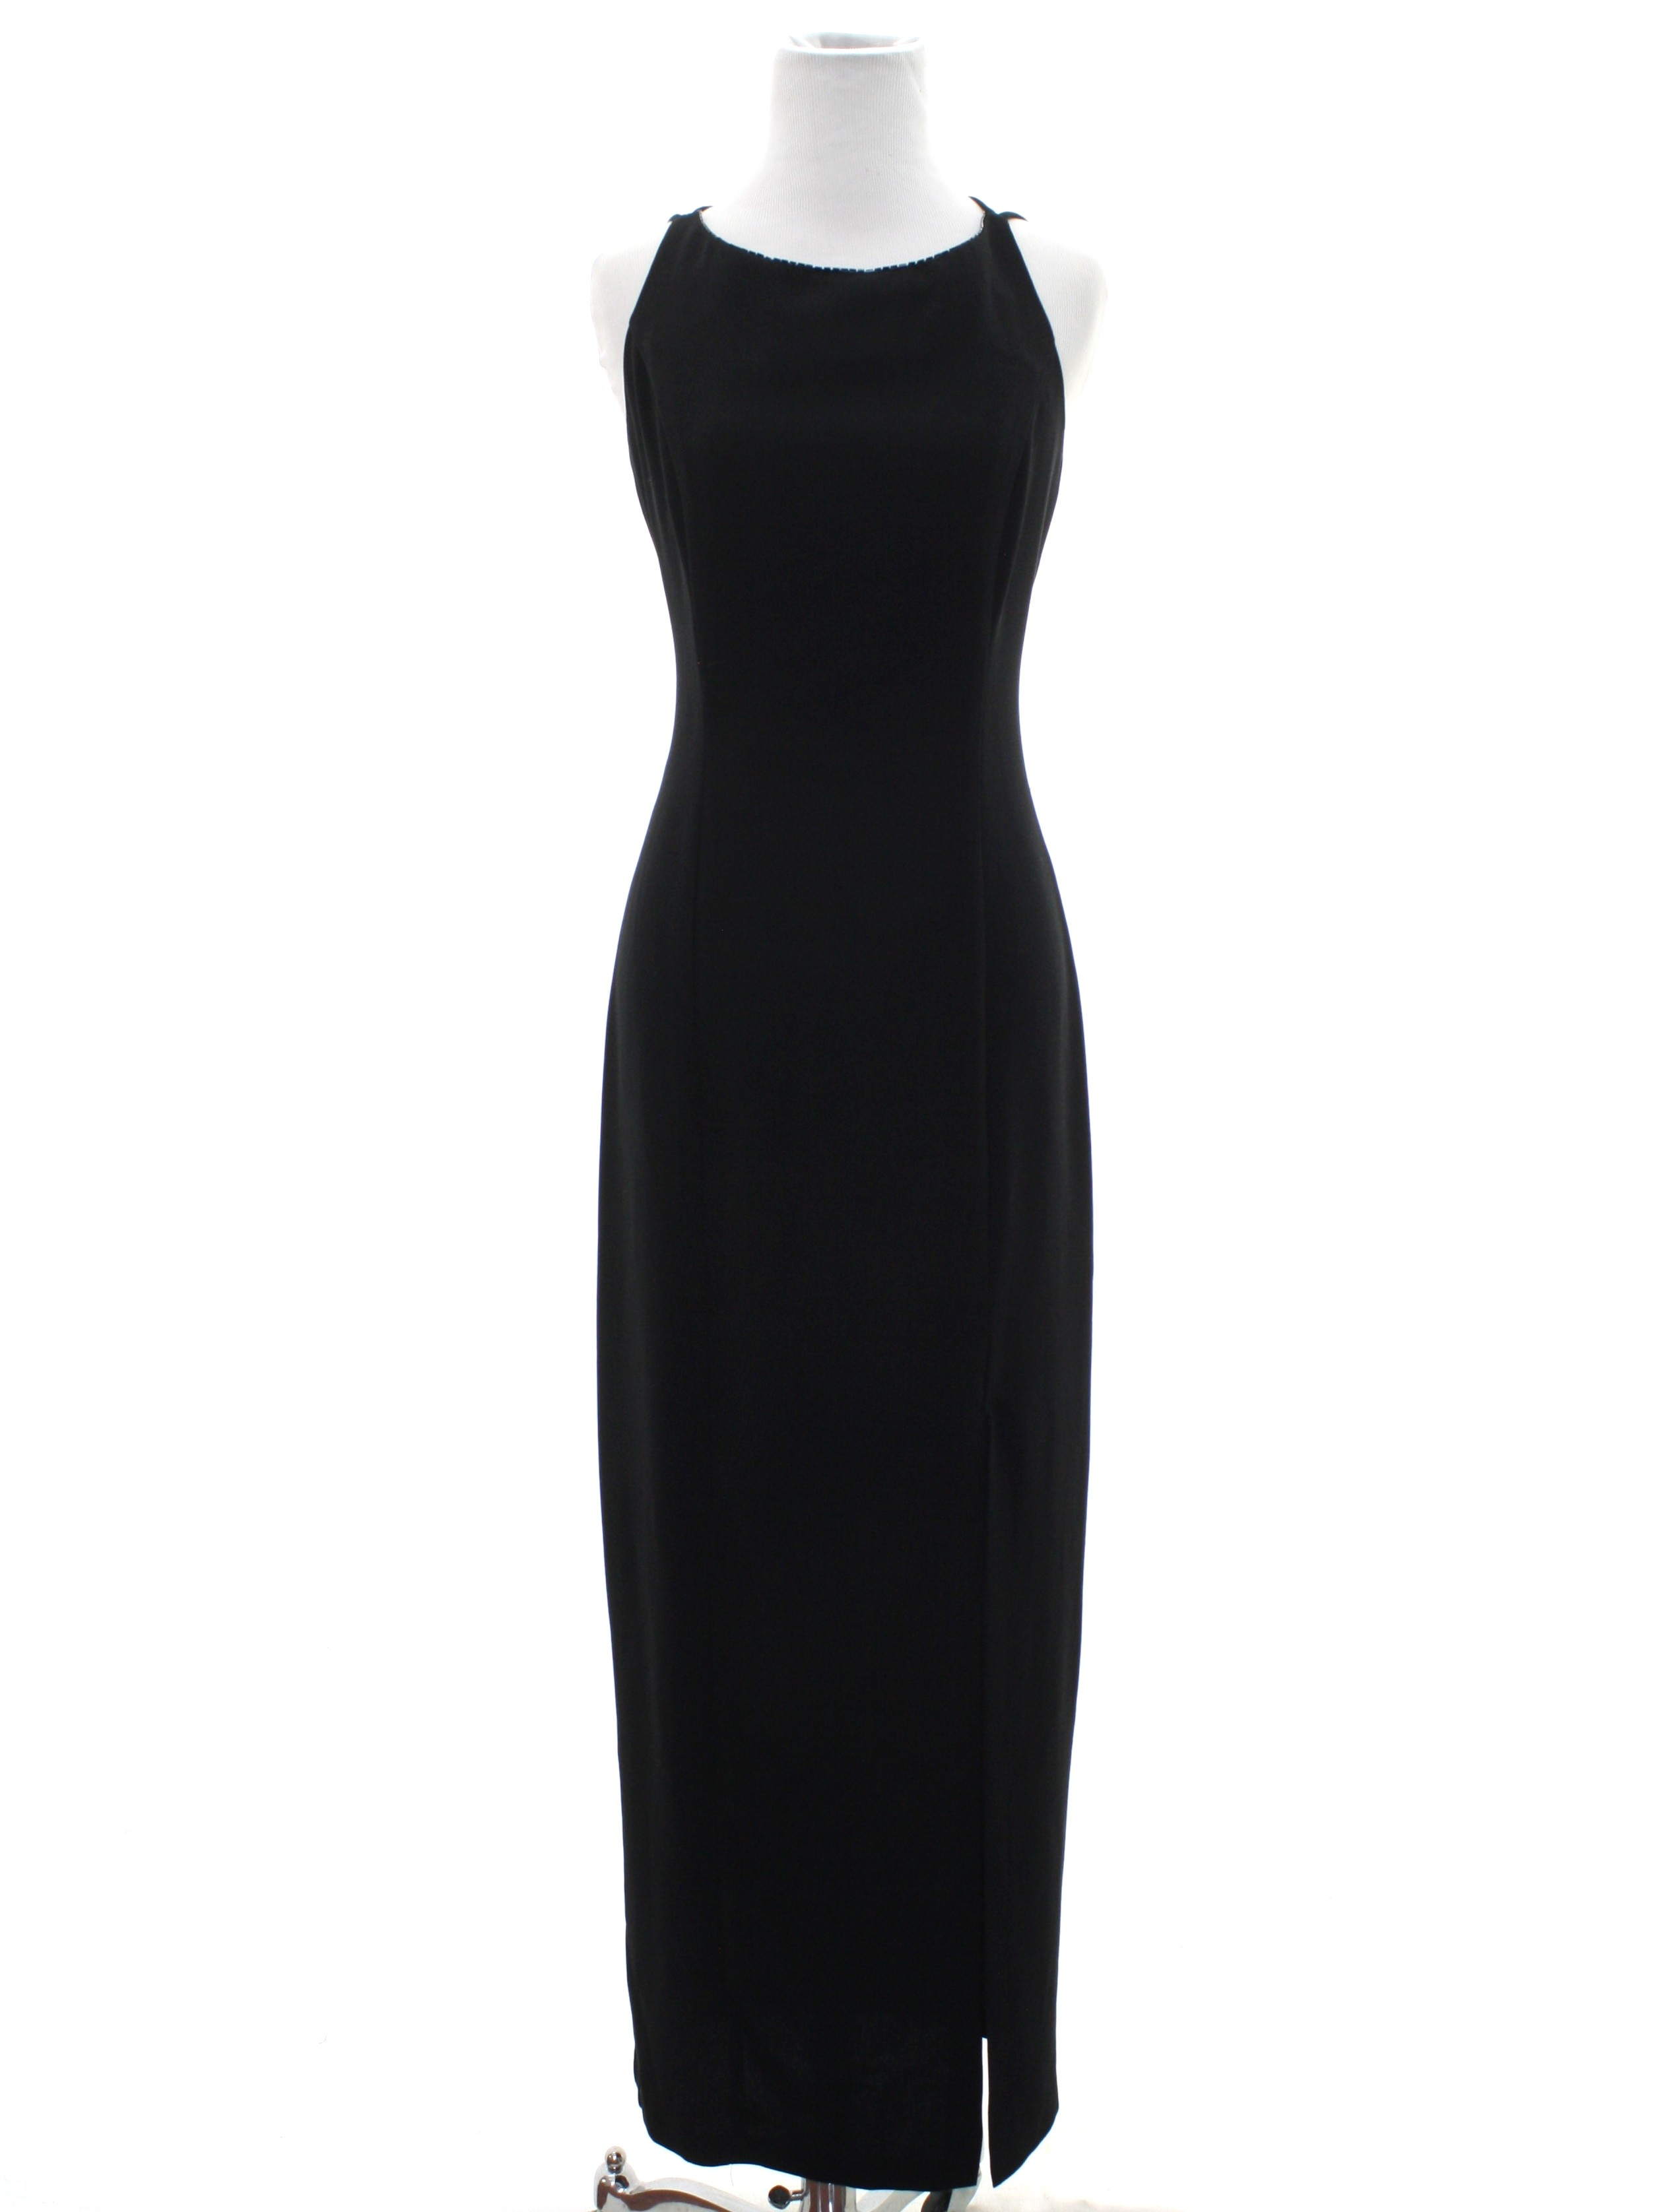 39a957a1ec 1990's Rampage Prom Or Cocktail Maxi Dress $44.00 In stock. Item No. 321145